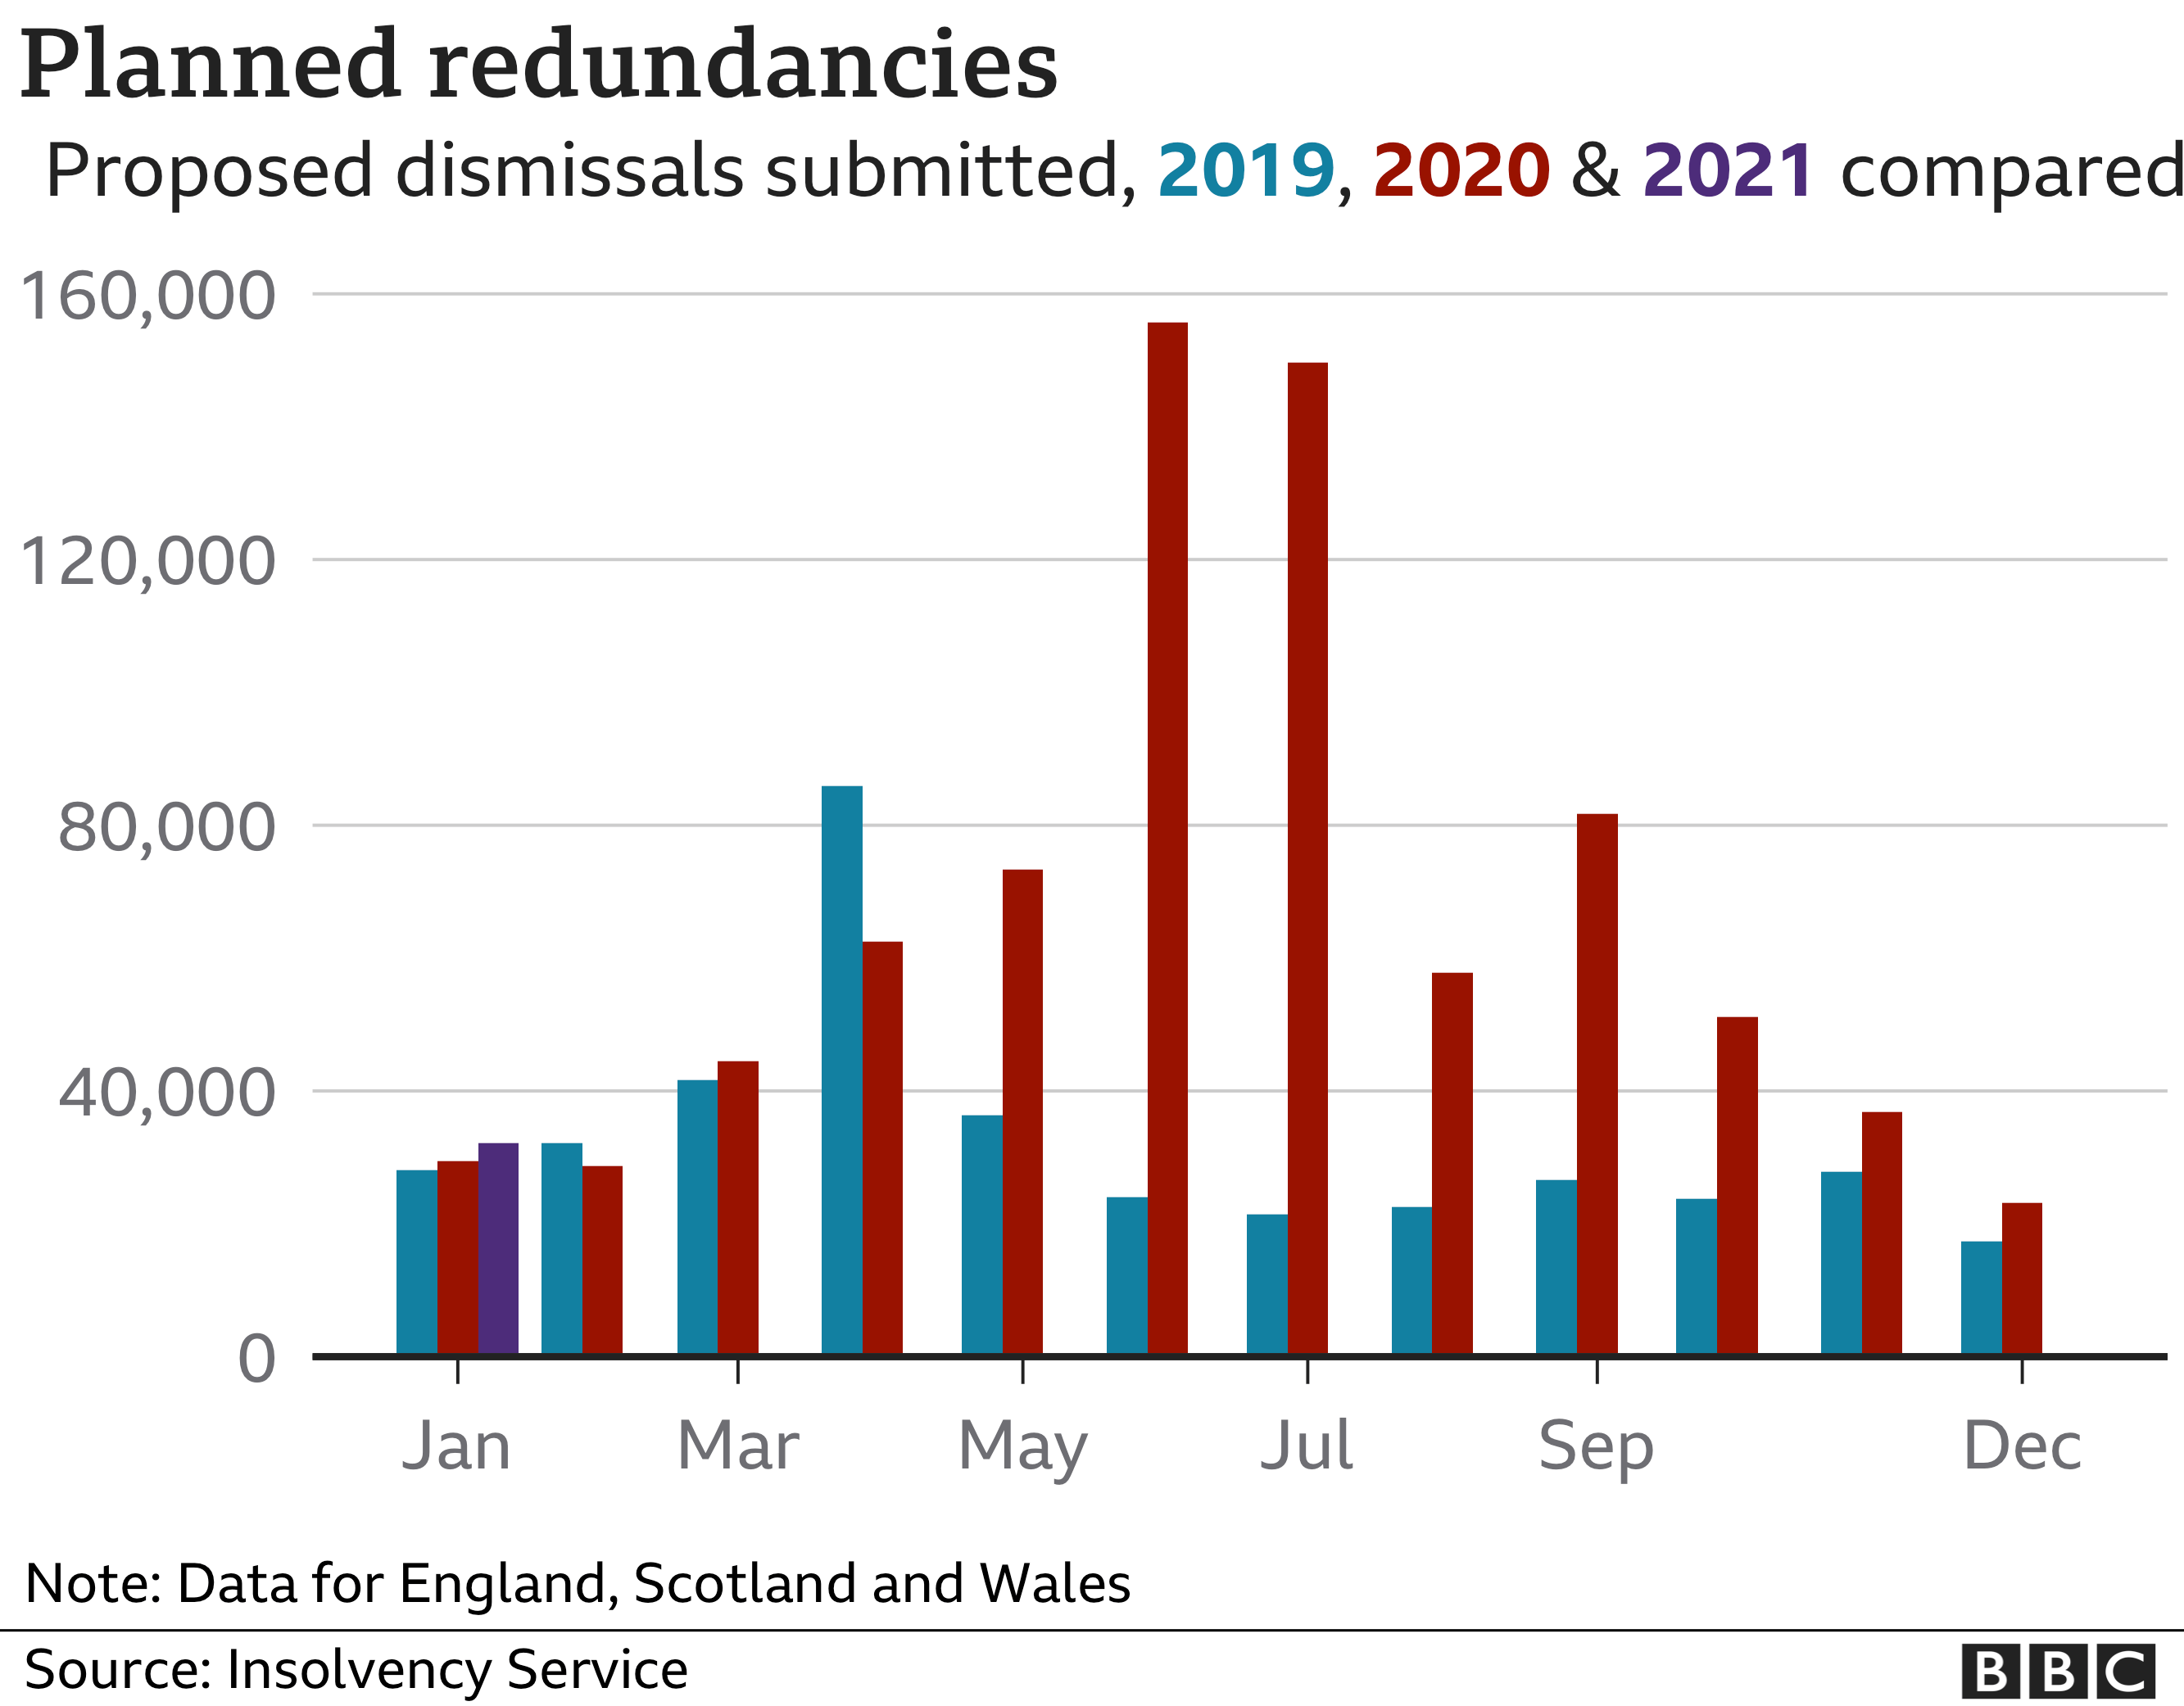 Graph showing number of planned redundancies in Britain, according to Insolvency Service data for 2019, 2020 and 2021.